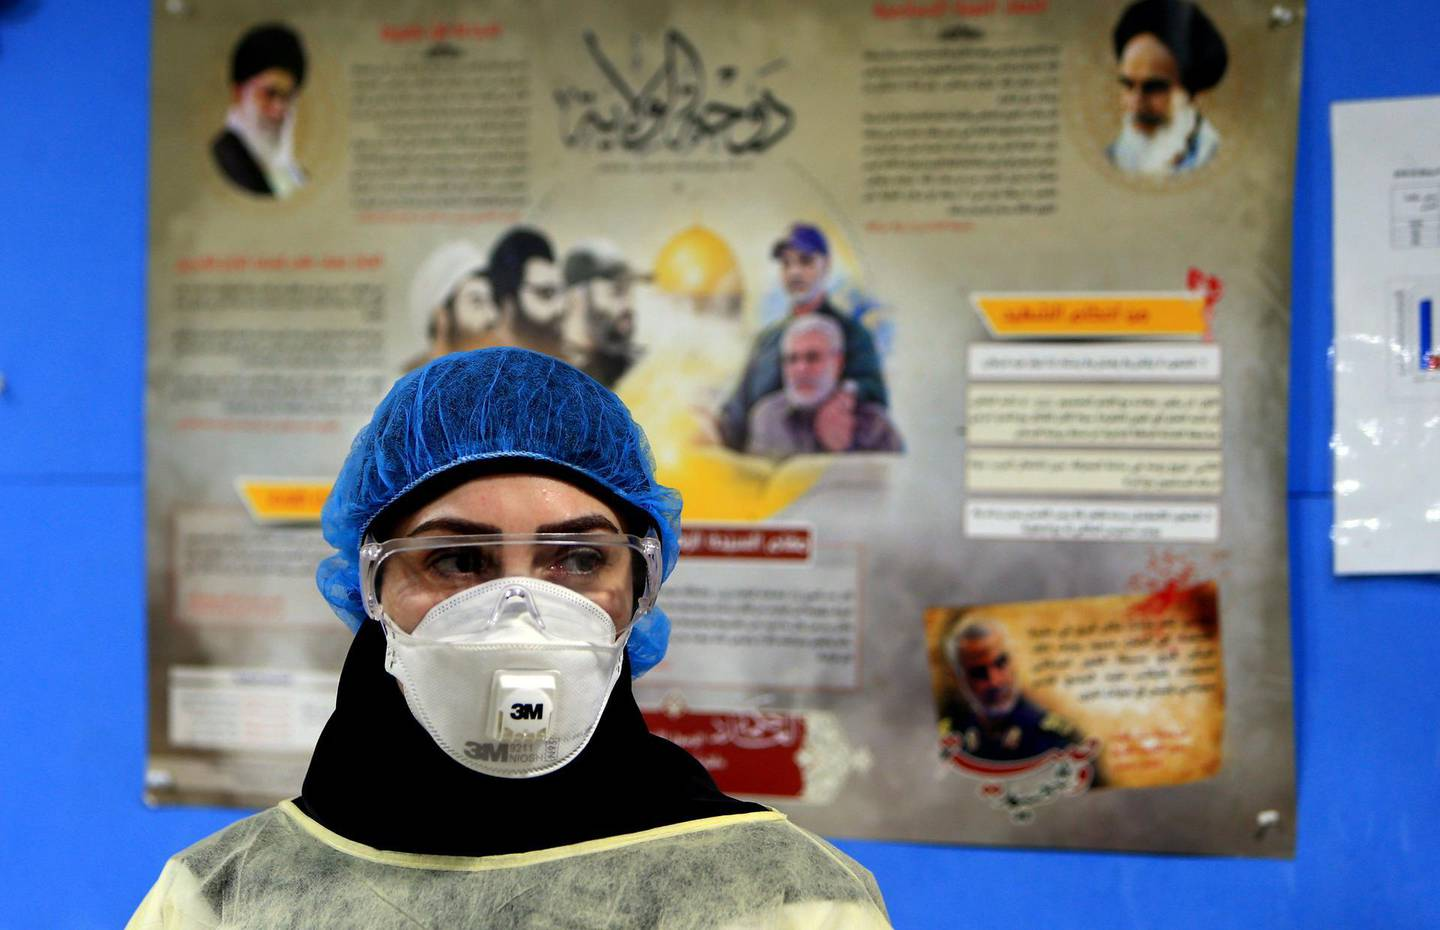 A picture taken during a guided tour organised by the Lebanese Shiite movement Hezbollah shows a nurse wearing protective clothing at a hospital in Beirut's southern suburb on March 31, 2020. / AFP / -